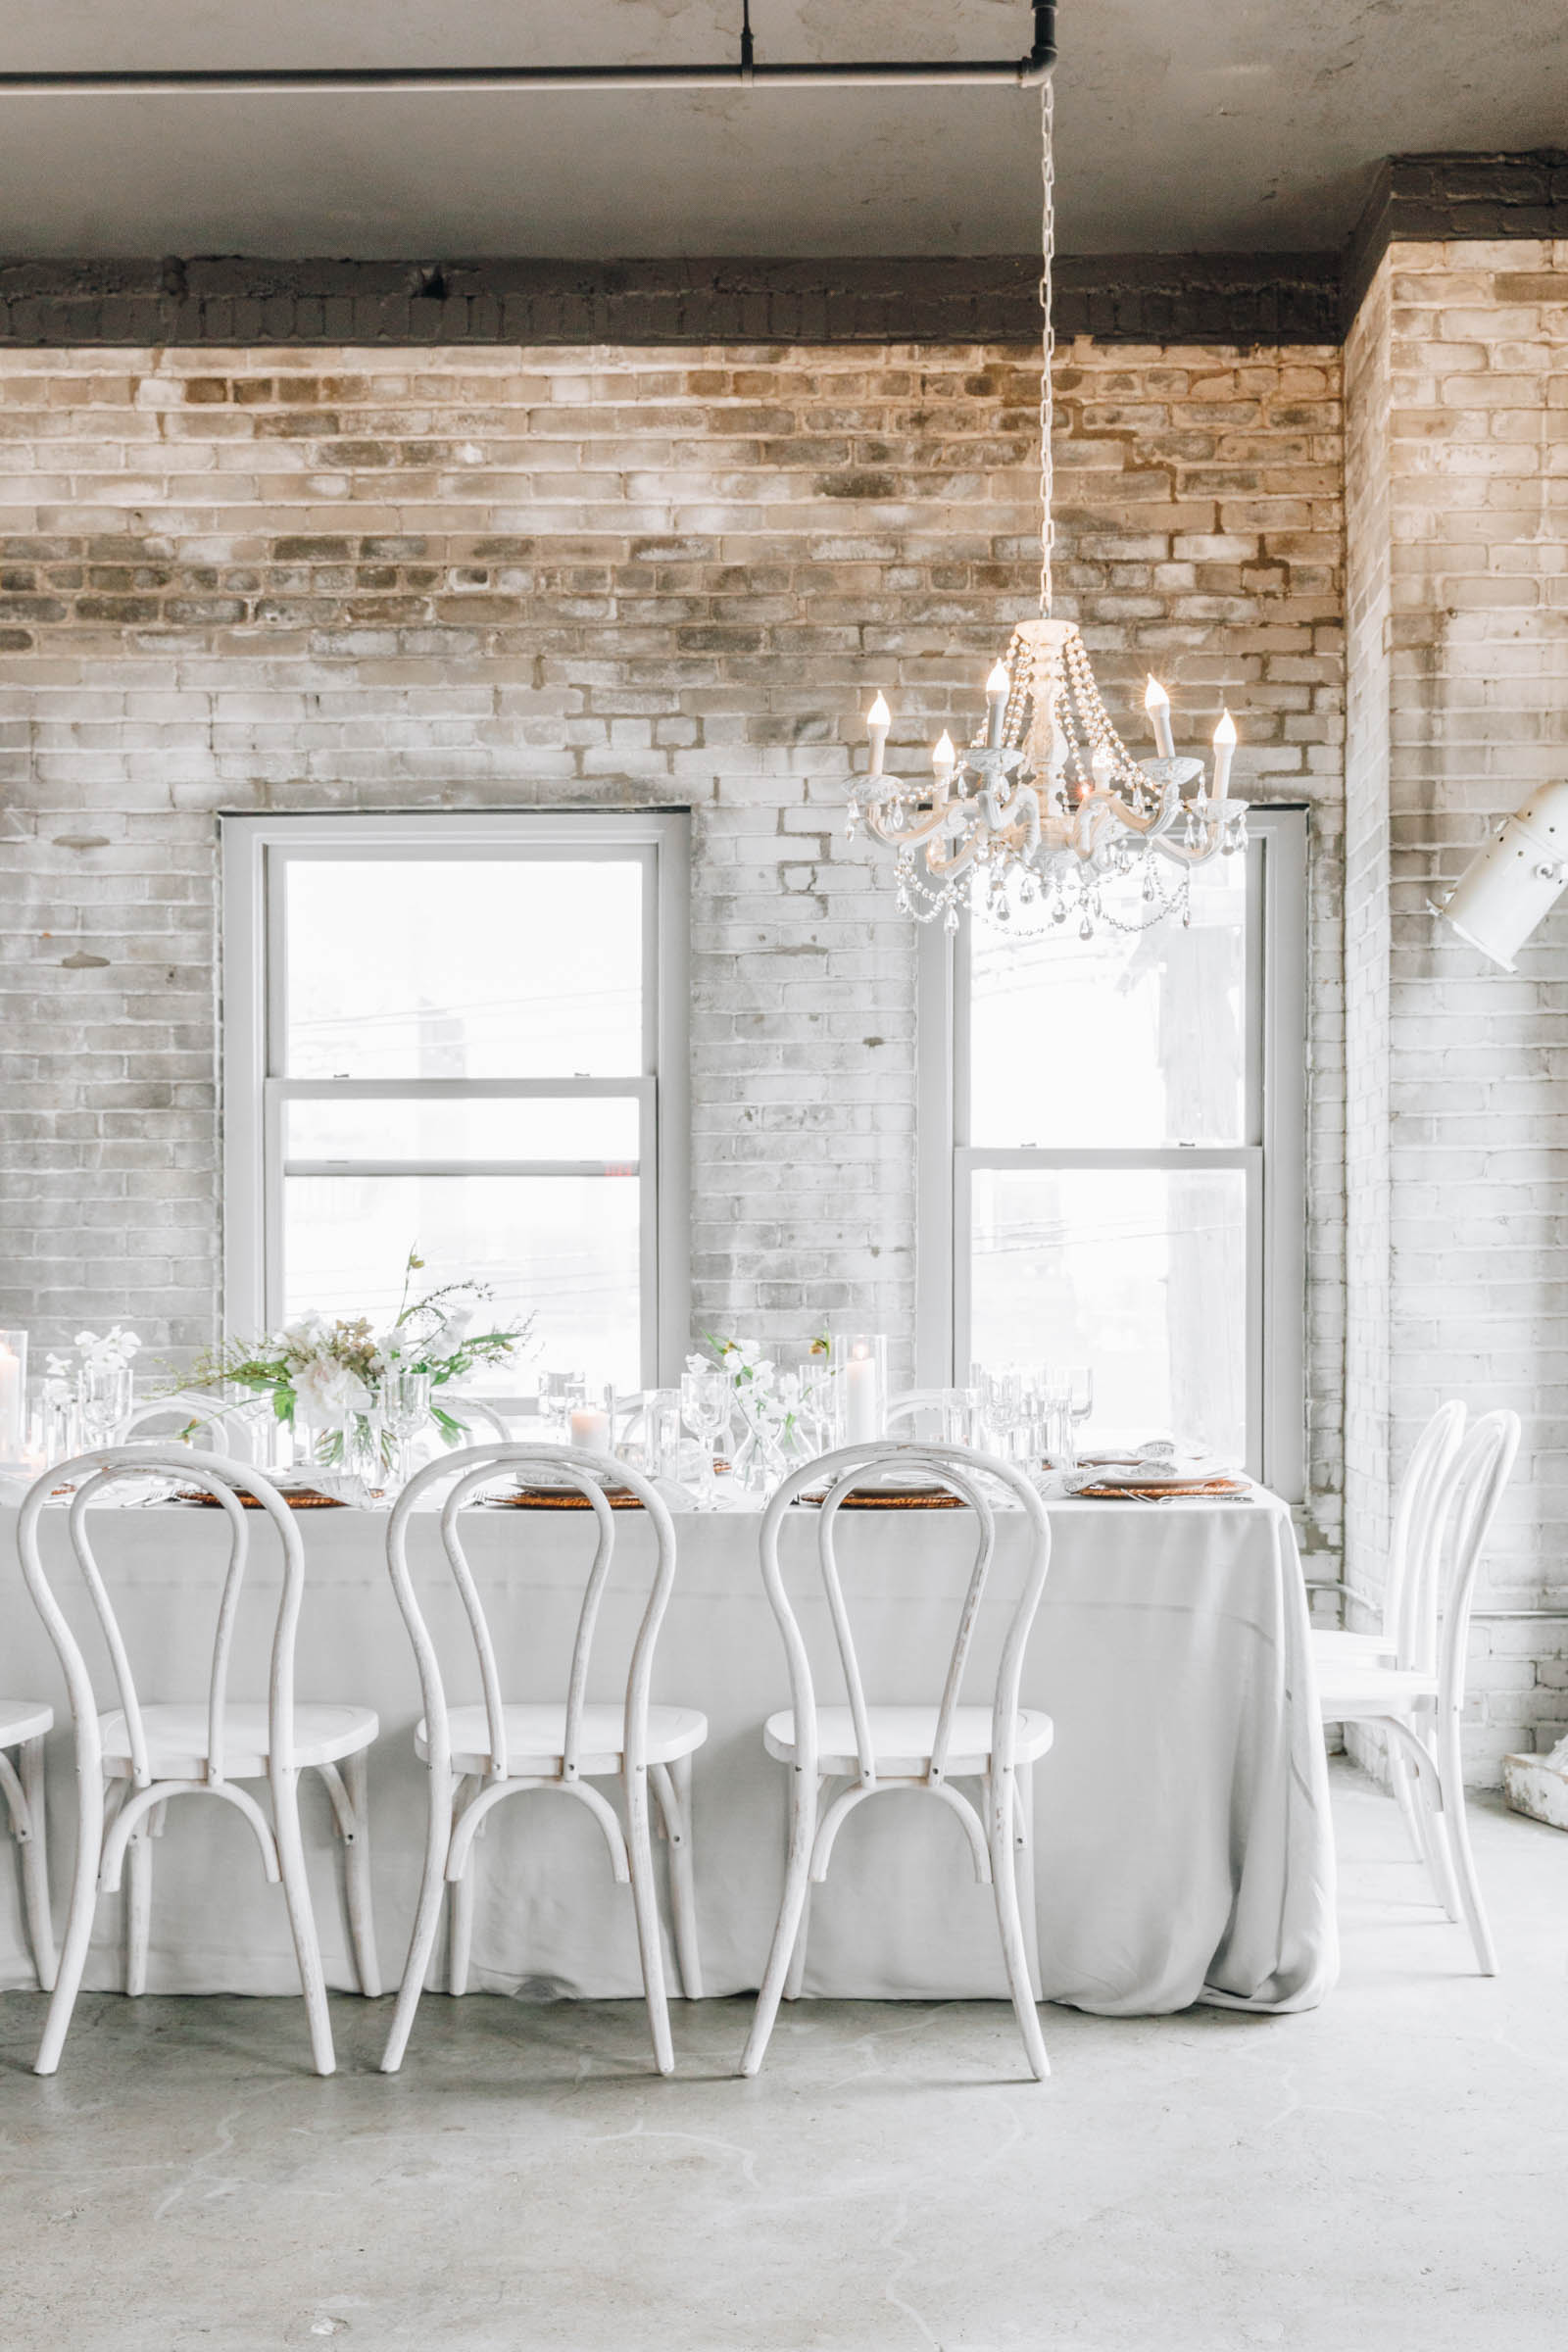 white table setting with white chairs